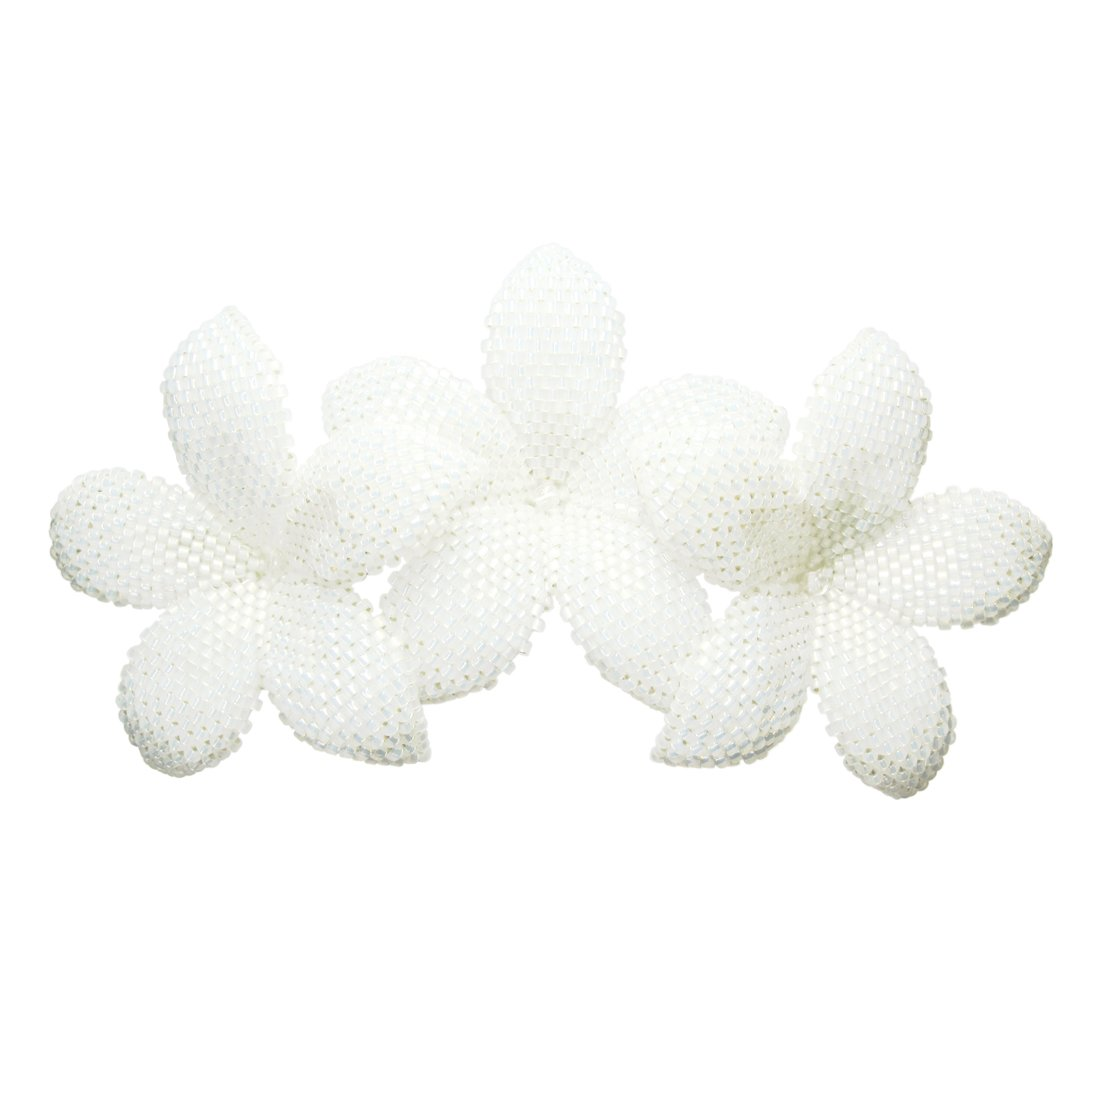 Heart in Hawaii Beaded Plumeria Trio - Sparkly White Satin